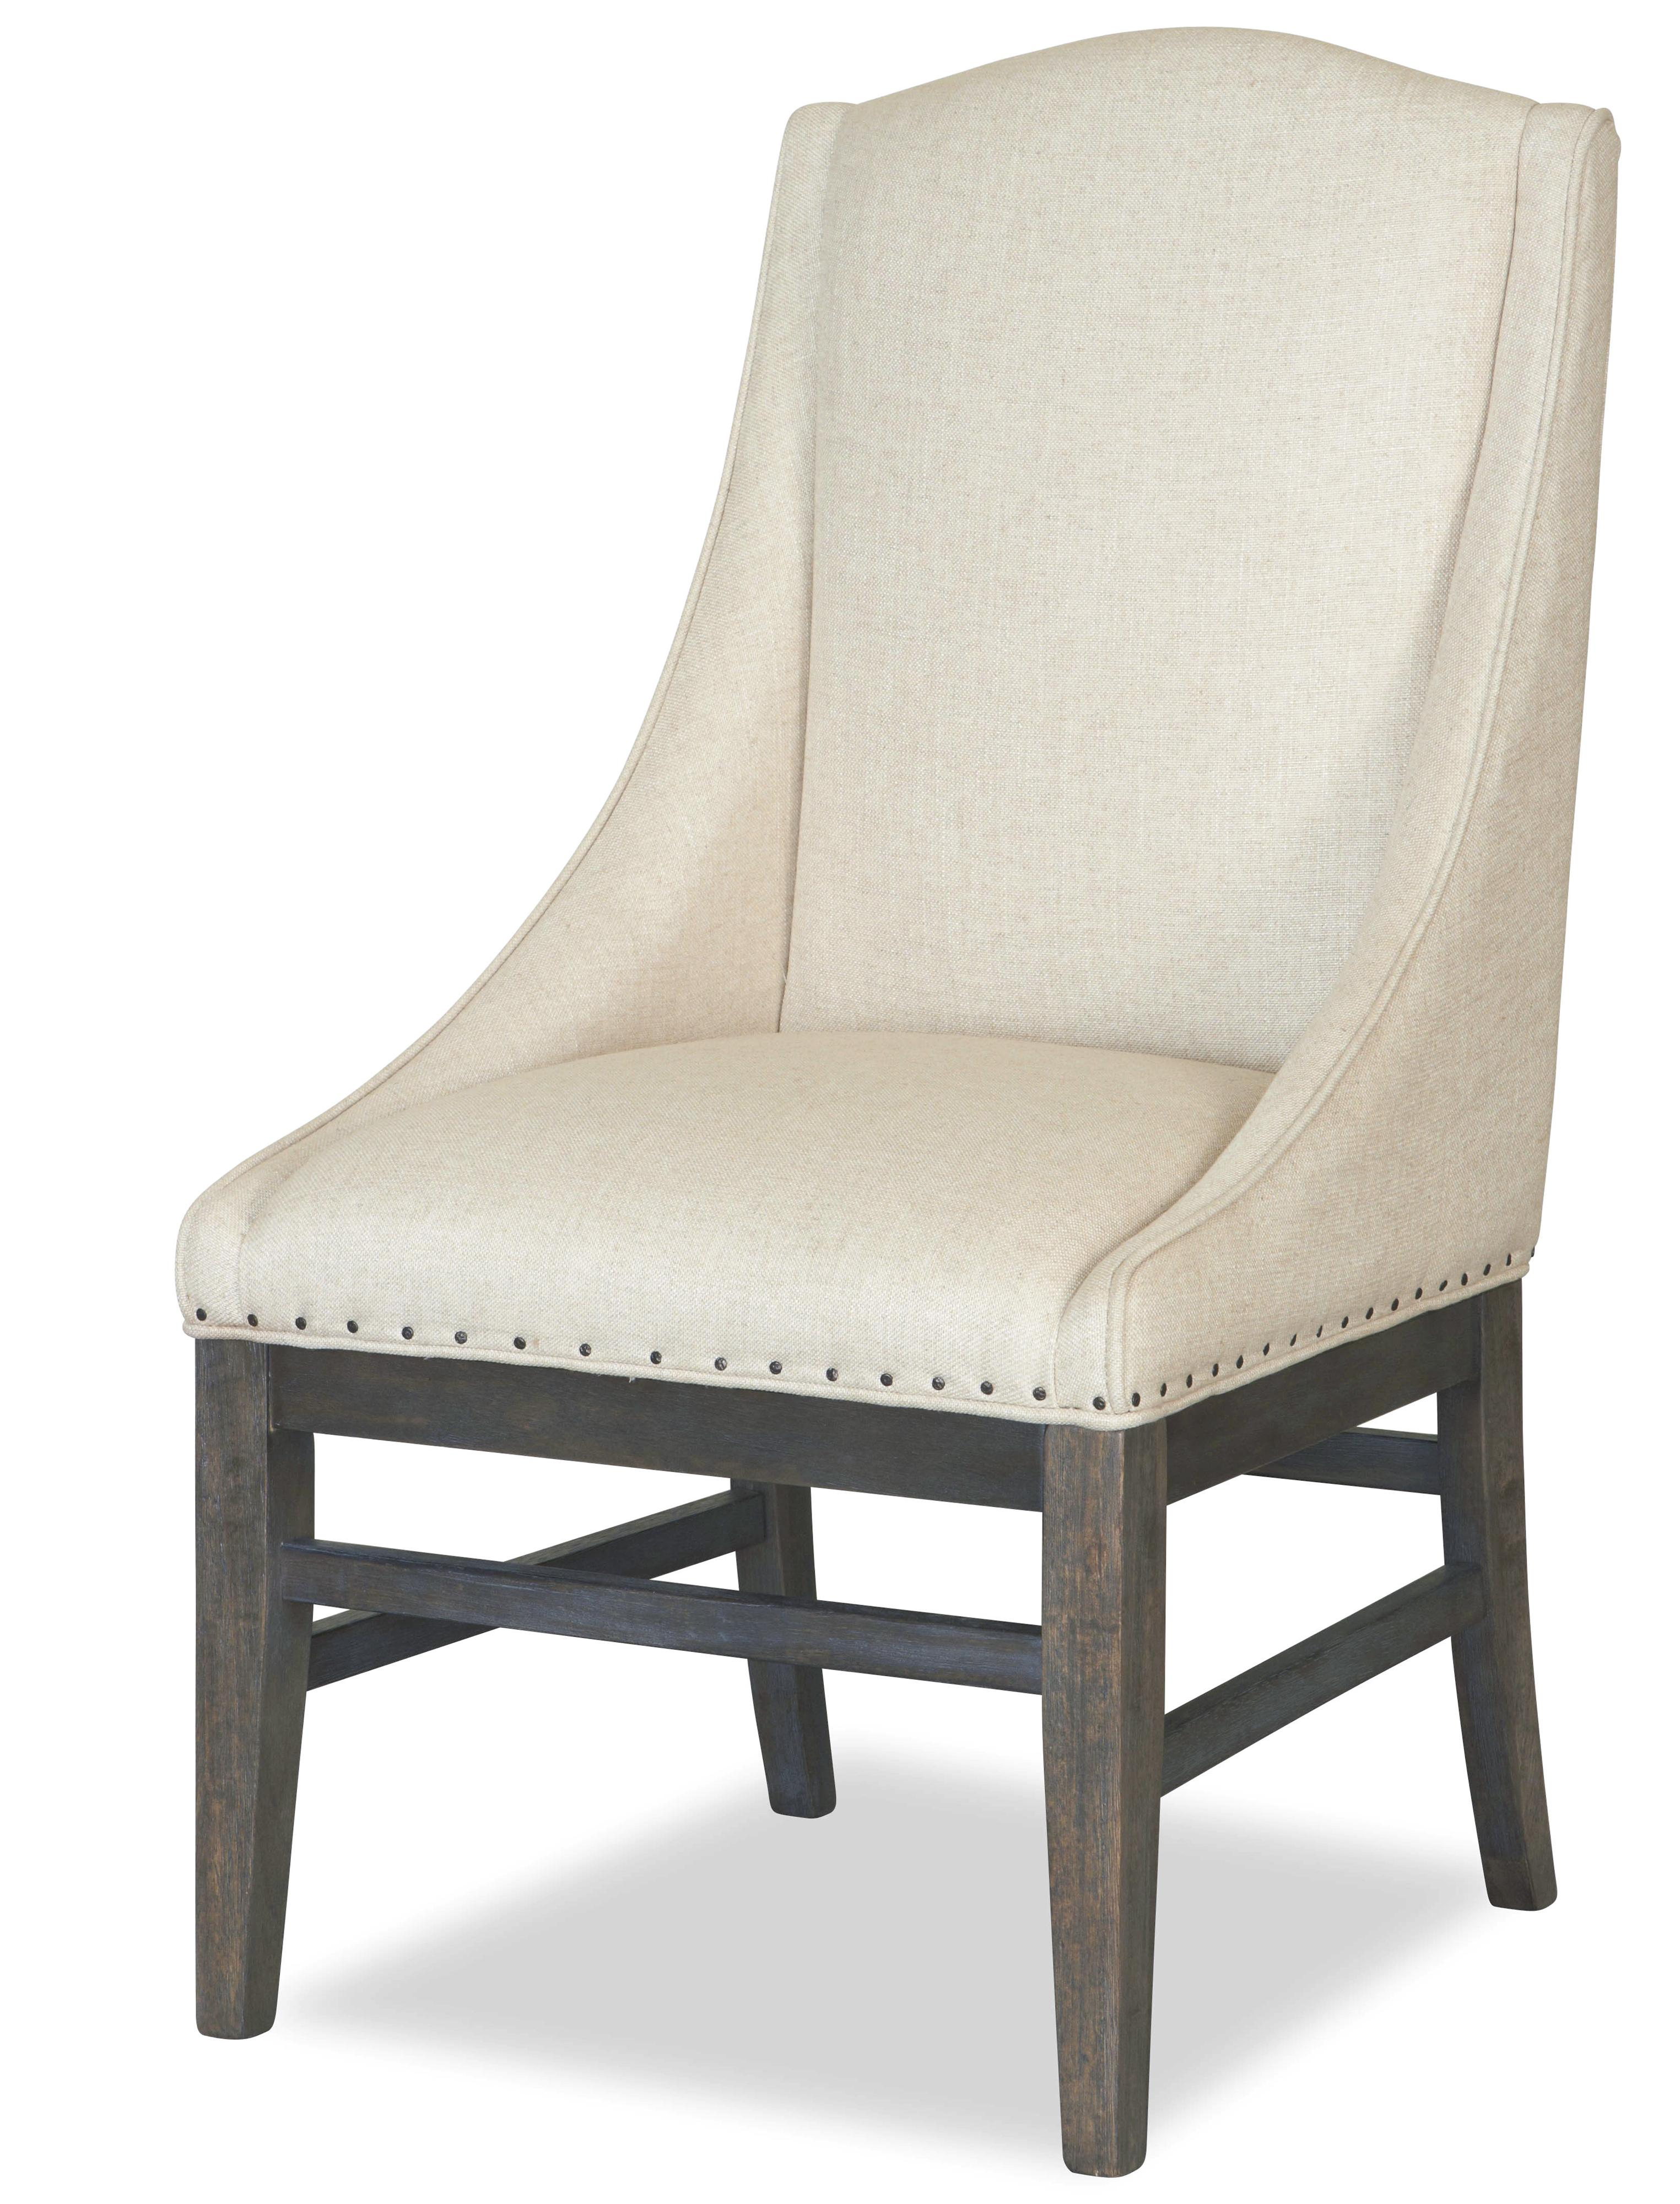 Universal Great Rooms - Berkeley 3 Urban Arm Chair - Item Number: 311739-RTA